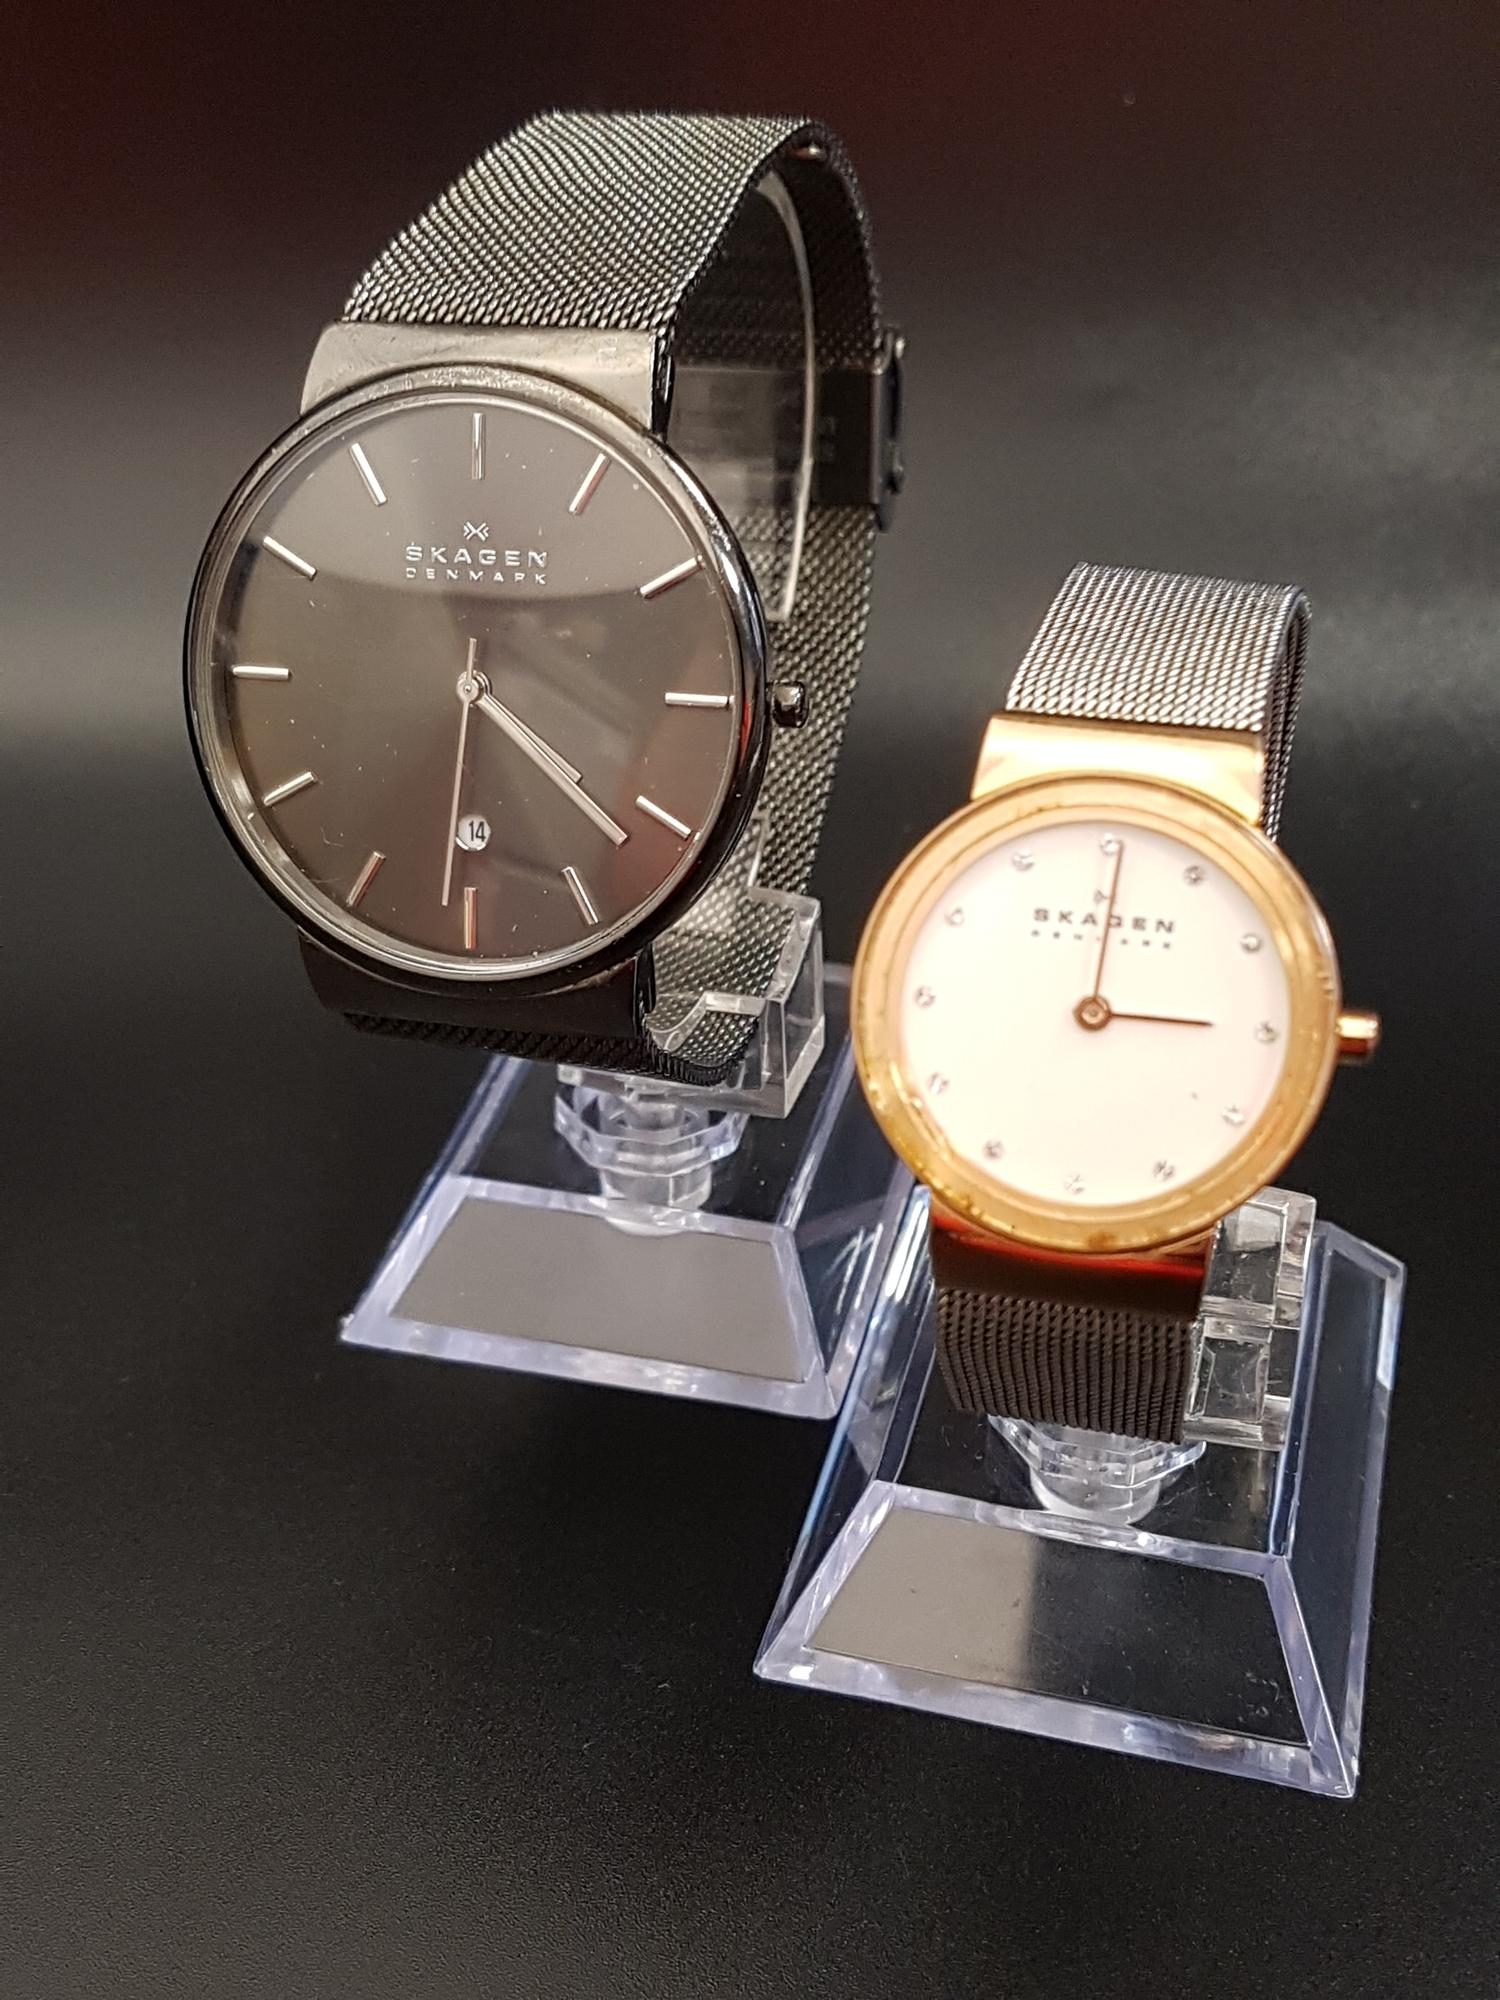 Lot 2 - LADIES AND GENTLEMEN'S SKAGEN WRISTWATCHES the ladies Freja watch with white dial and crystal five